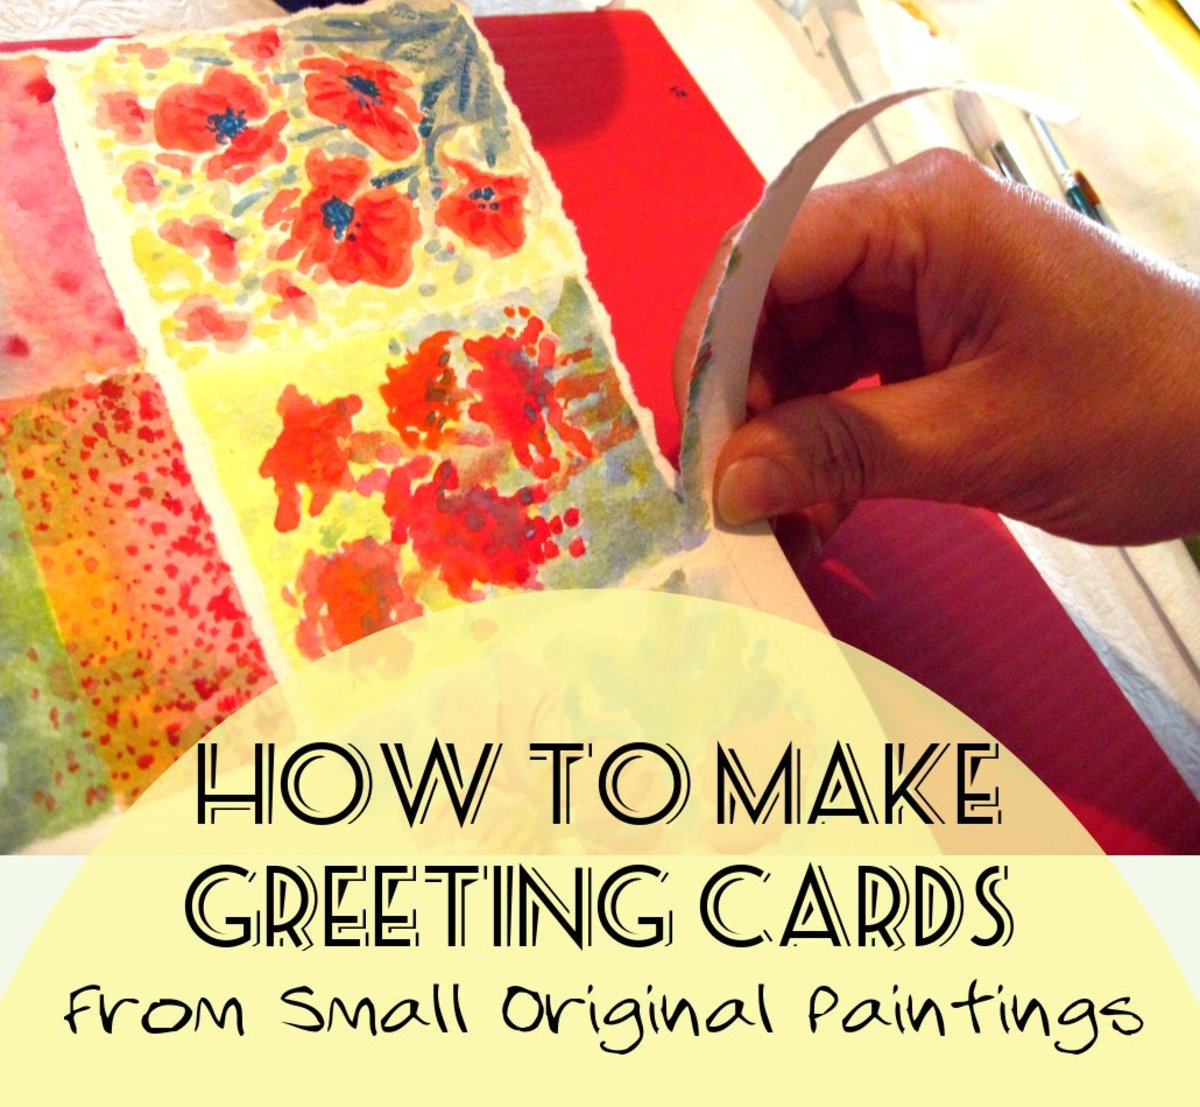 How to Create DIY Greeting Cards With Original Paintings